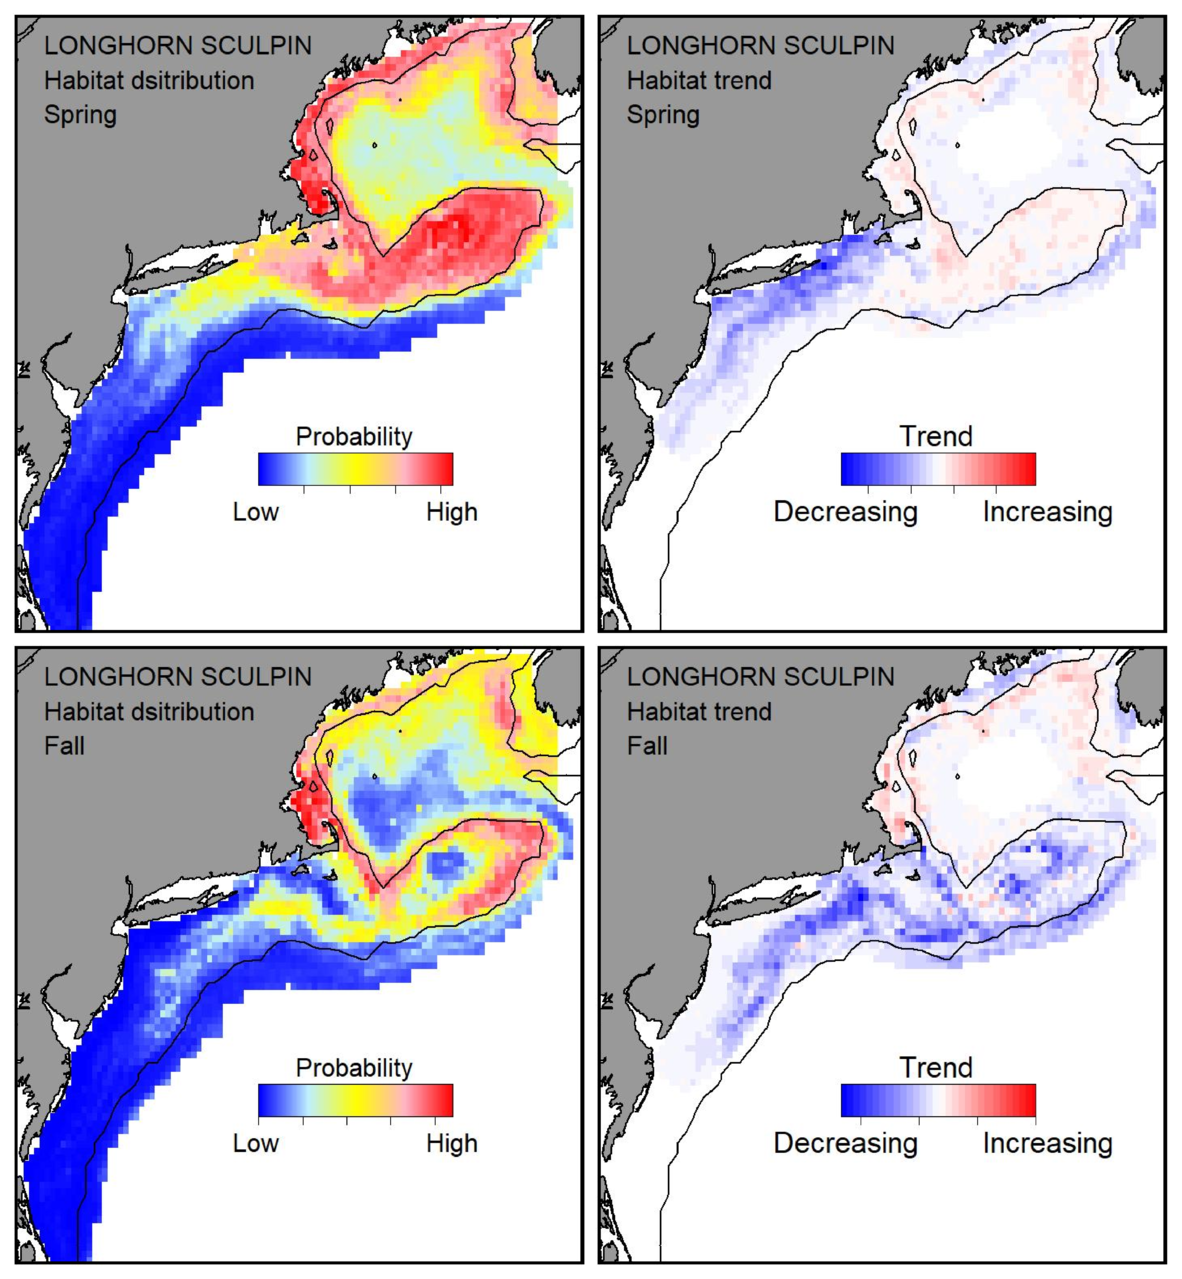 Probable habitat distribution for longhorn sculpin showing the highest concentration and increasing trend in the Gulf of Maine during the spring. Bottom row: Probable habitat distribution for longhorn sculpin showing the highest concentration and increasing trend in the Gulf of Maine during the fall.